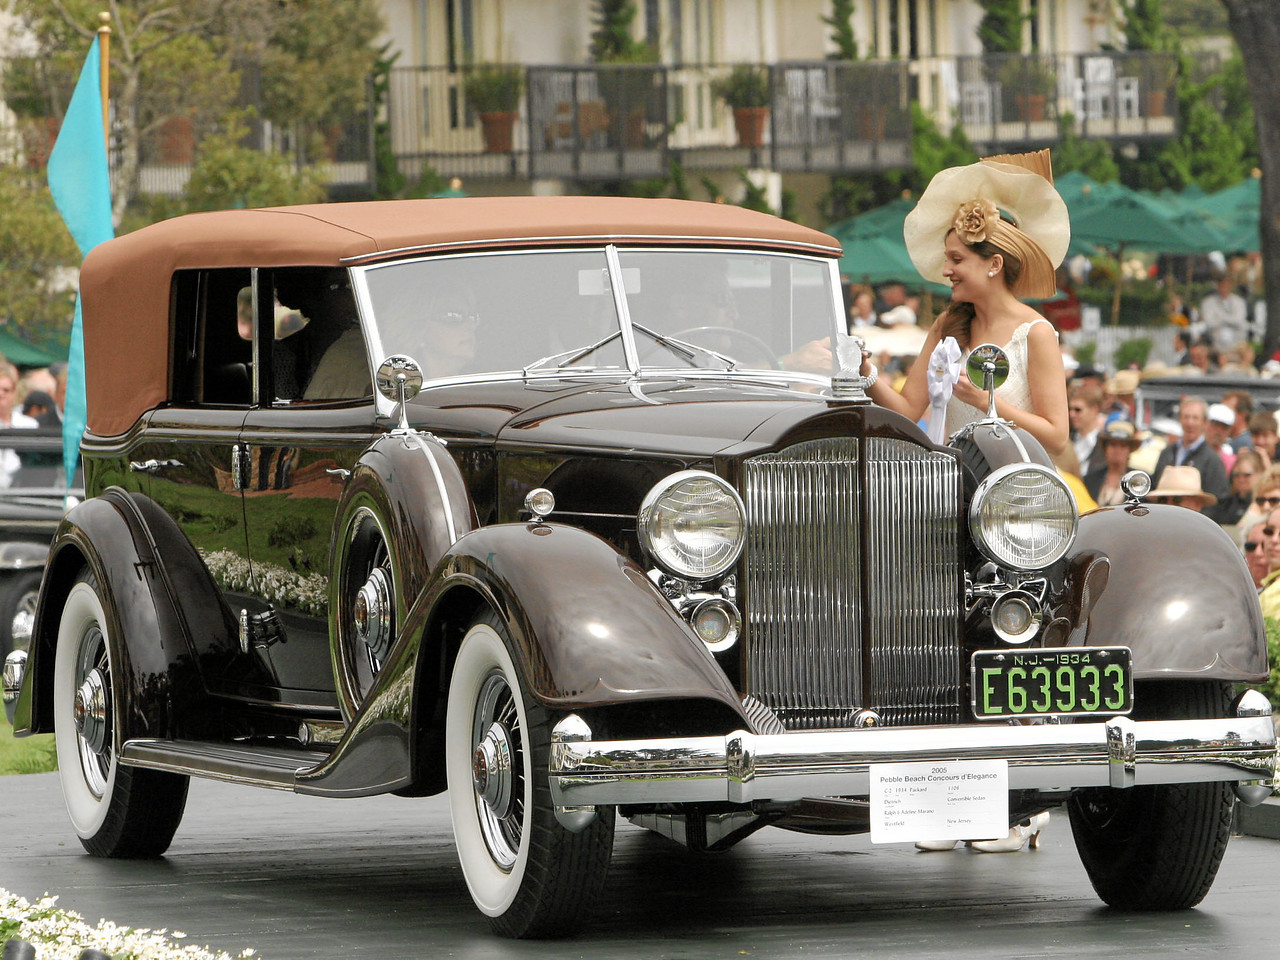 3rd Class C-2 (American Classic Open Custom Coachwork 1925-1941) 1934 Packard 1108 Dietrich Convertible Sedan owned by Ralph and Adeline Marano from Westfield, New Jersey